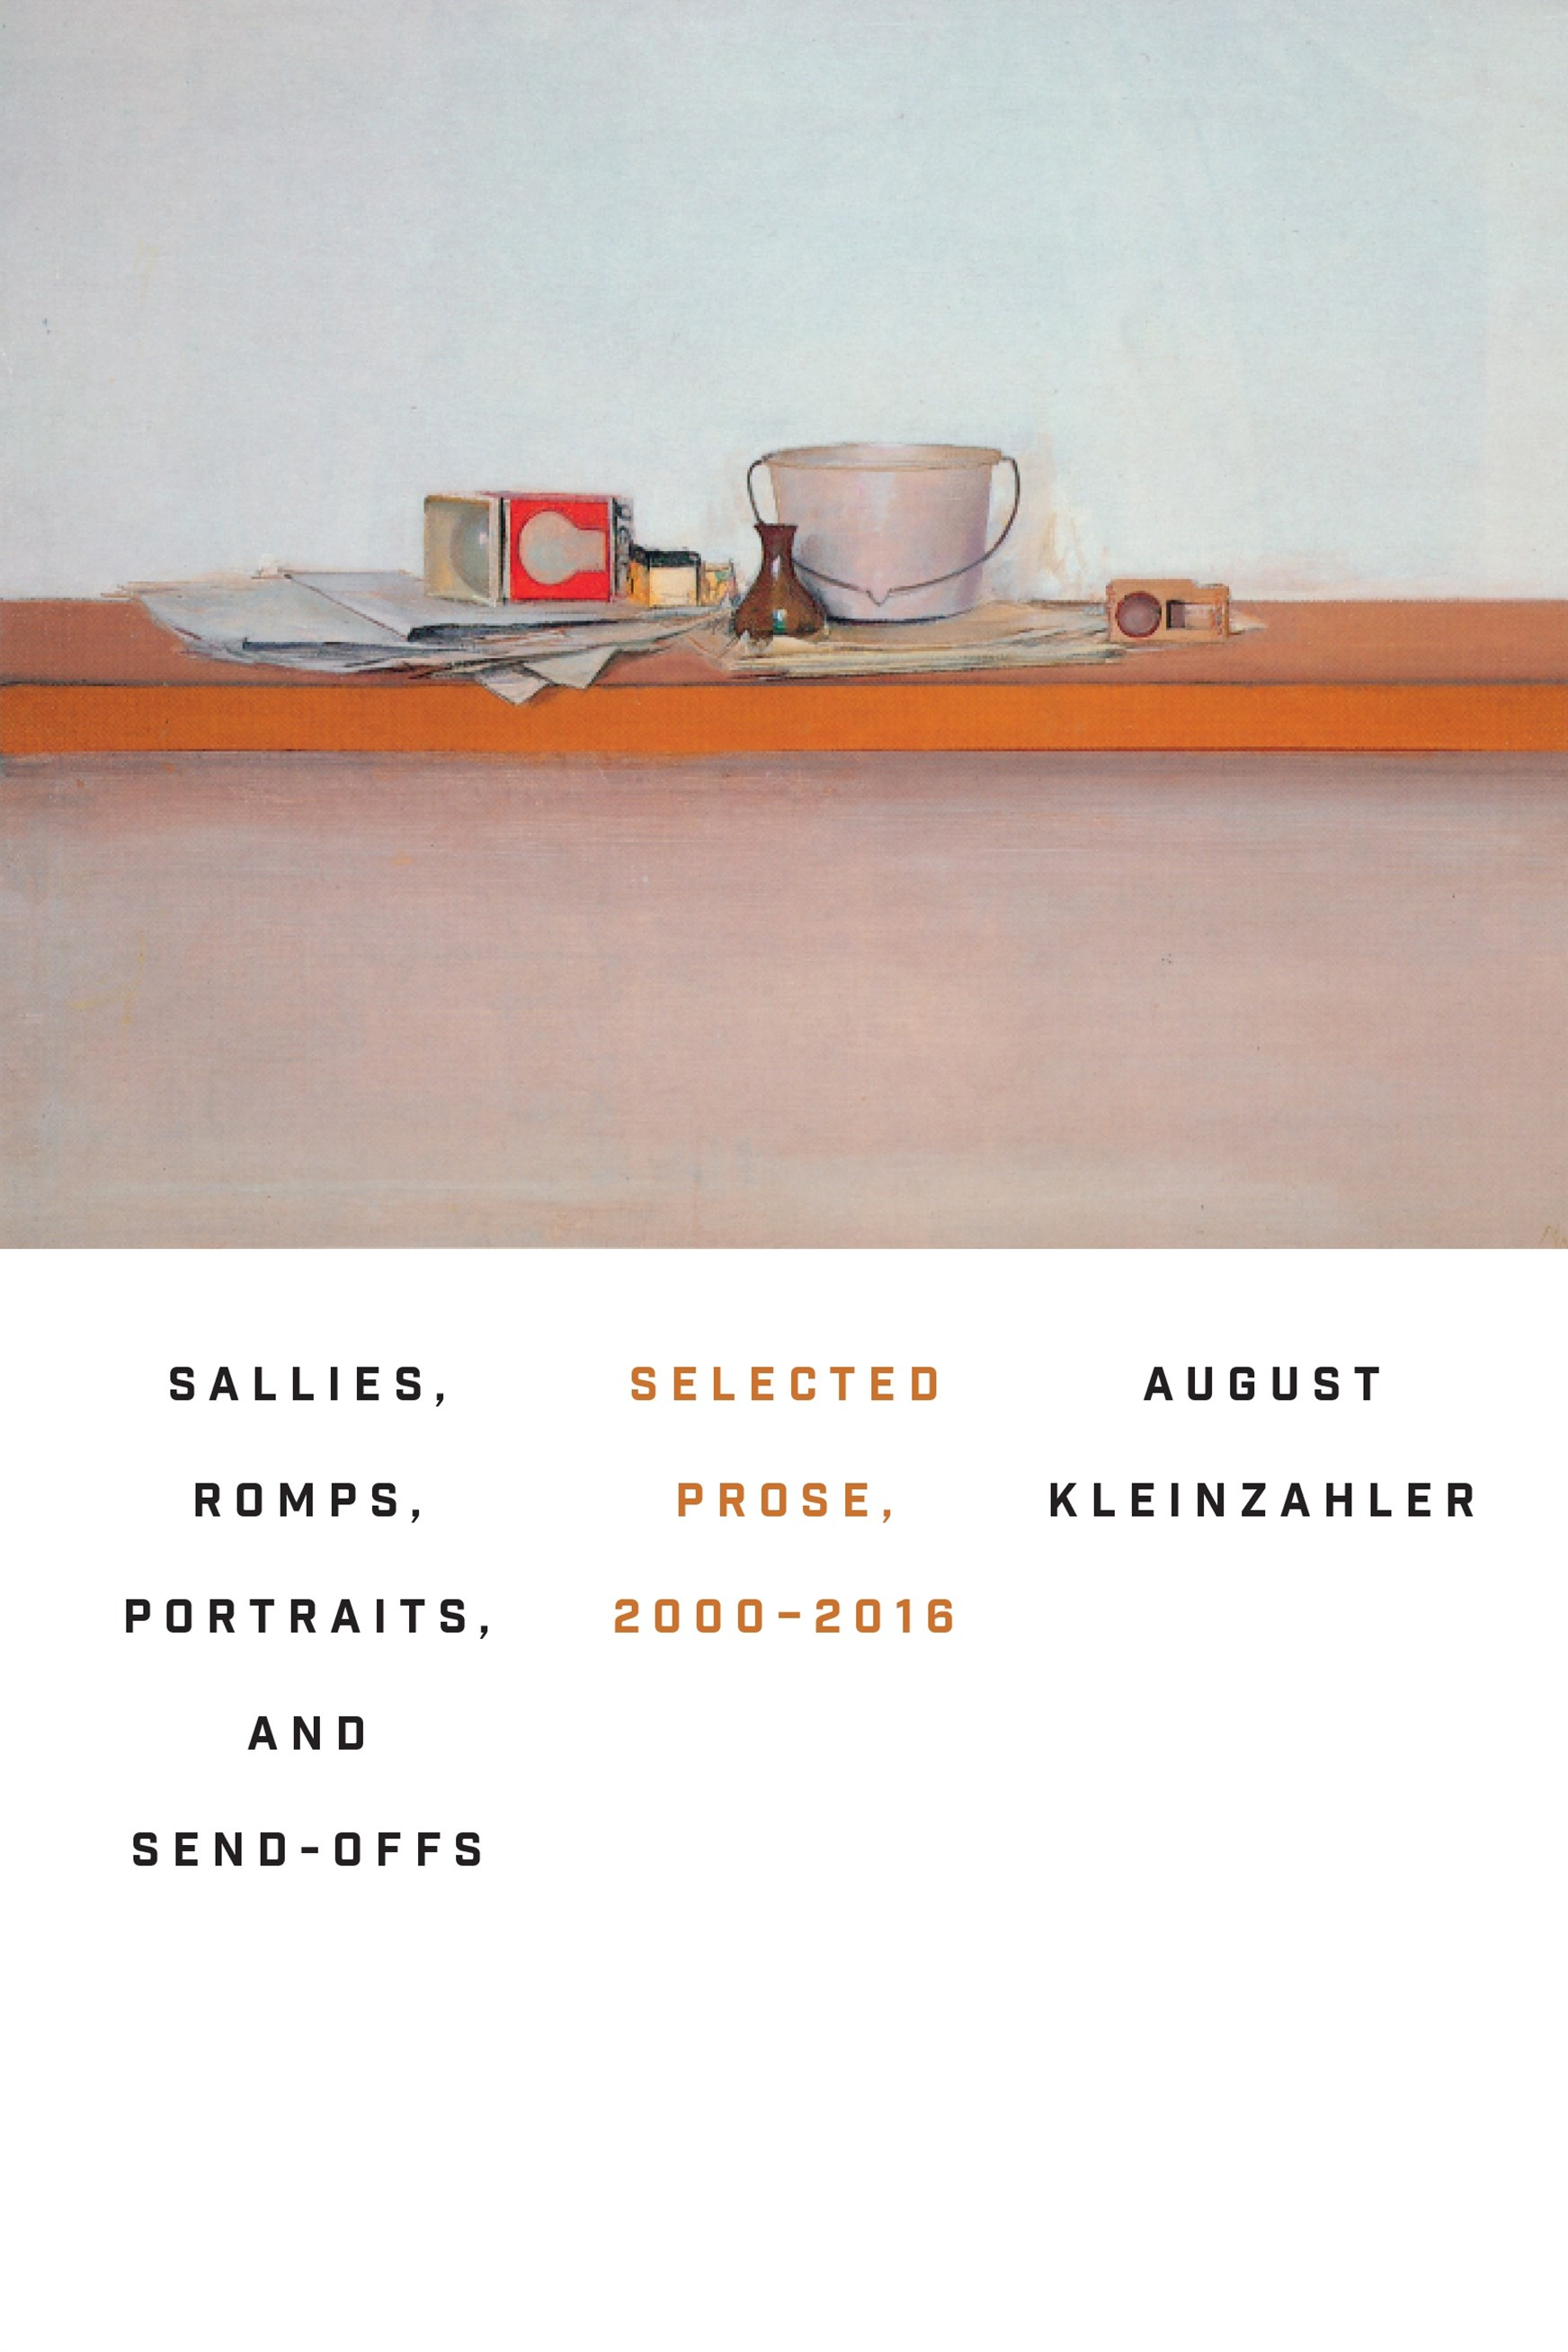 Sallies, Romps, Portraits, and Send-Offs: Selected Prose, 2000-20